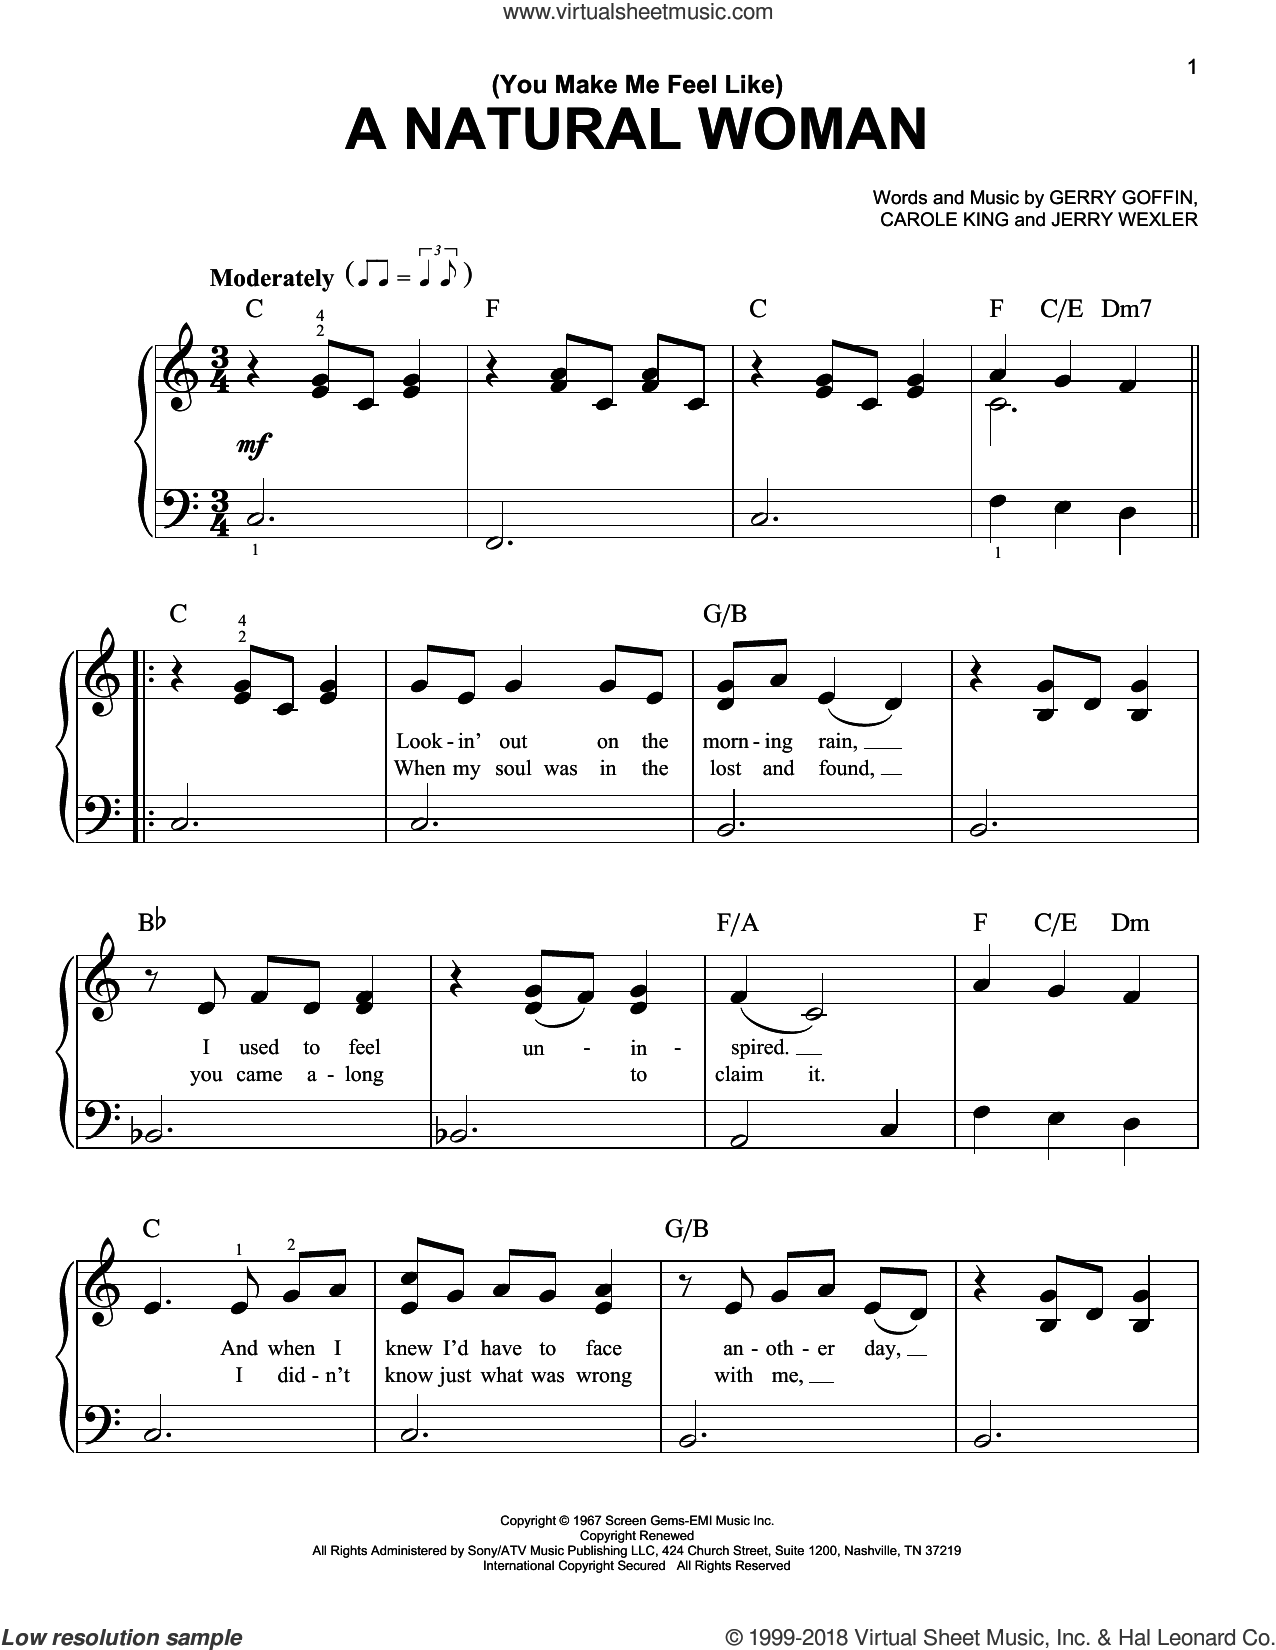 (You Make Me Feel Like) A Natural Woman sheet music for piano solo by Aretha Franklin, Celine Dion, Mary J. Blige, Gerry Goffin and Jerry Wexler, beginner